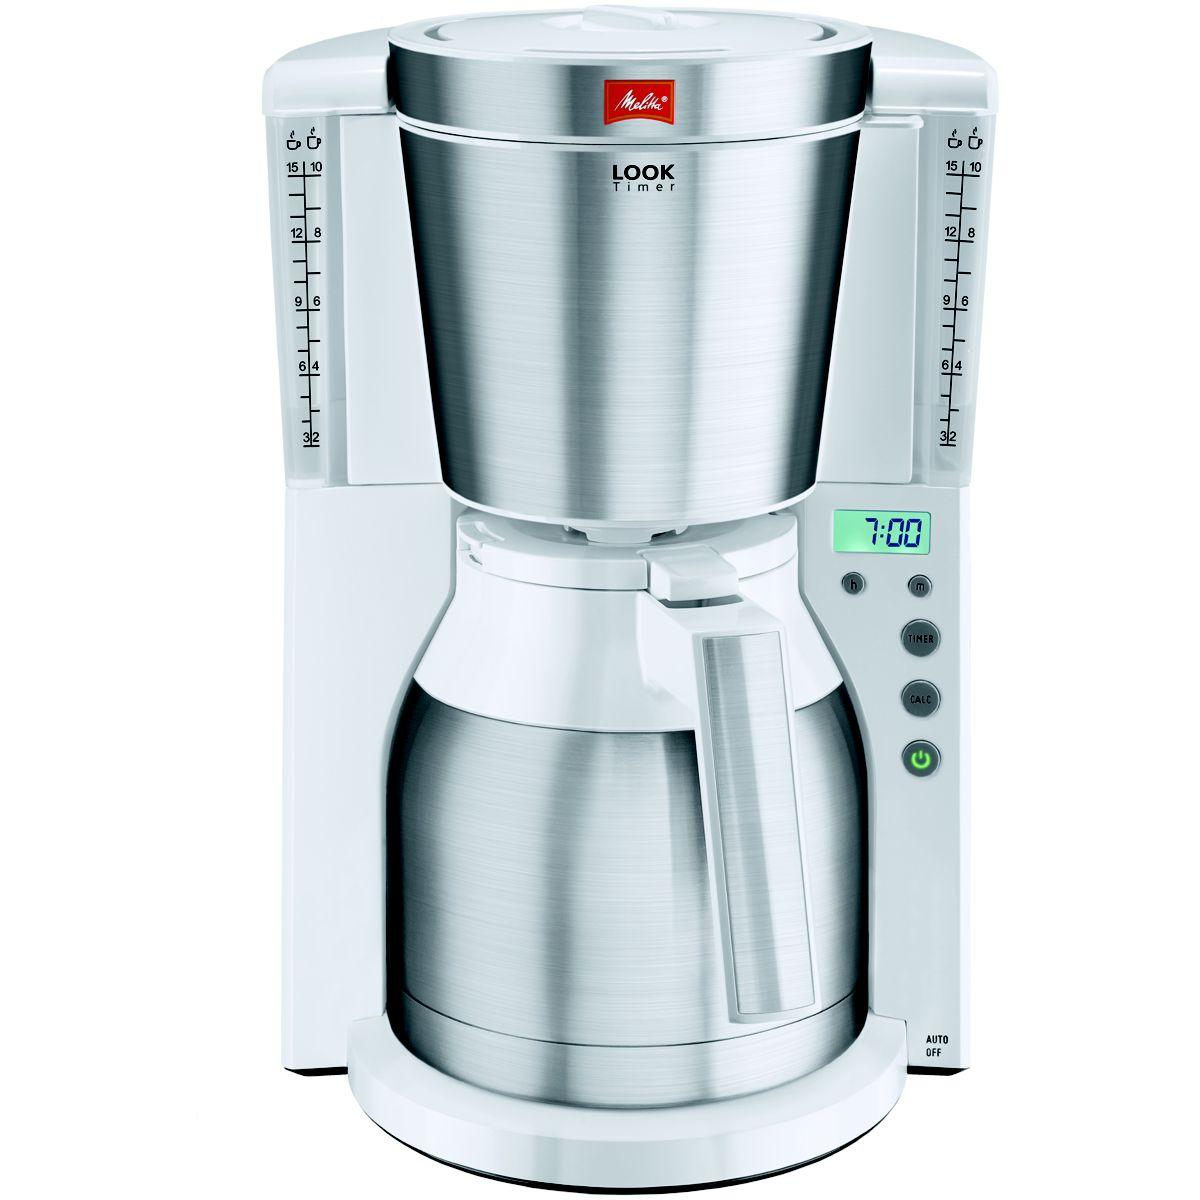 Cafeti�re isotherme melitta look iv therm timer blanc/inox (photo)